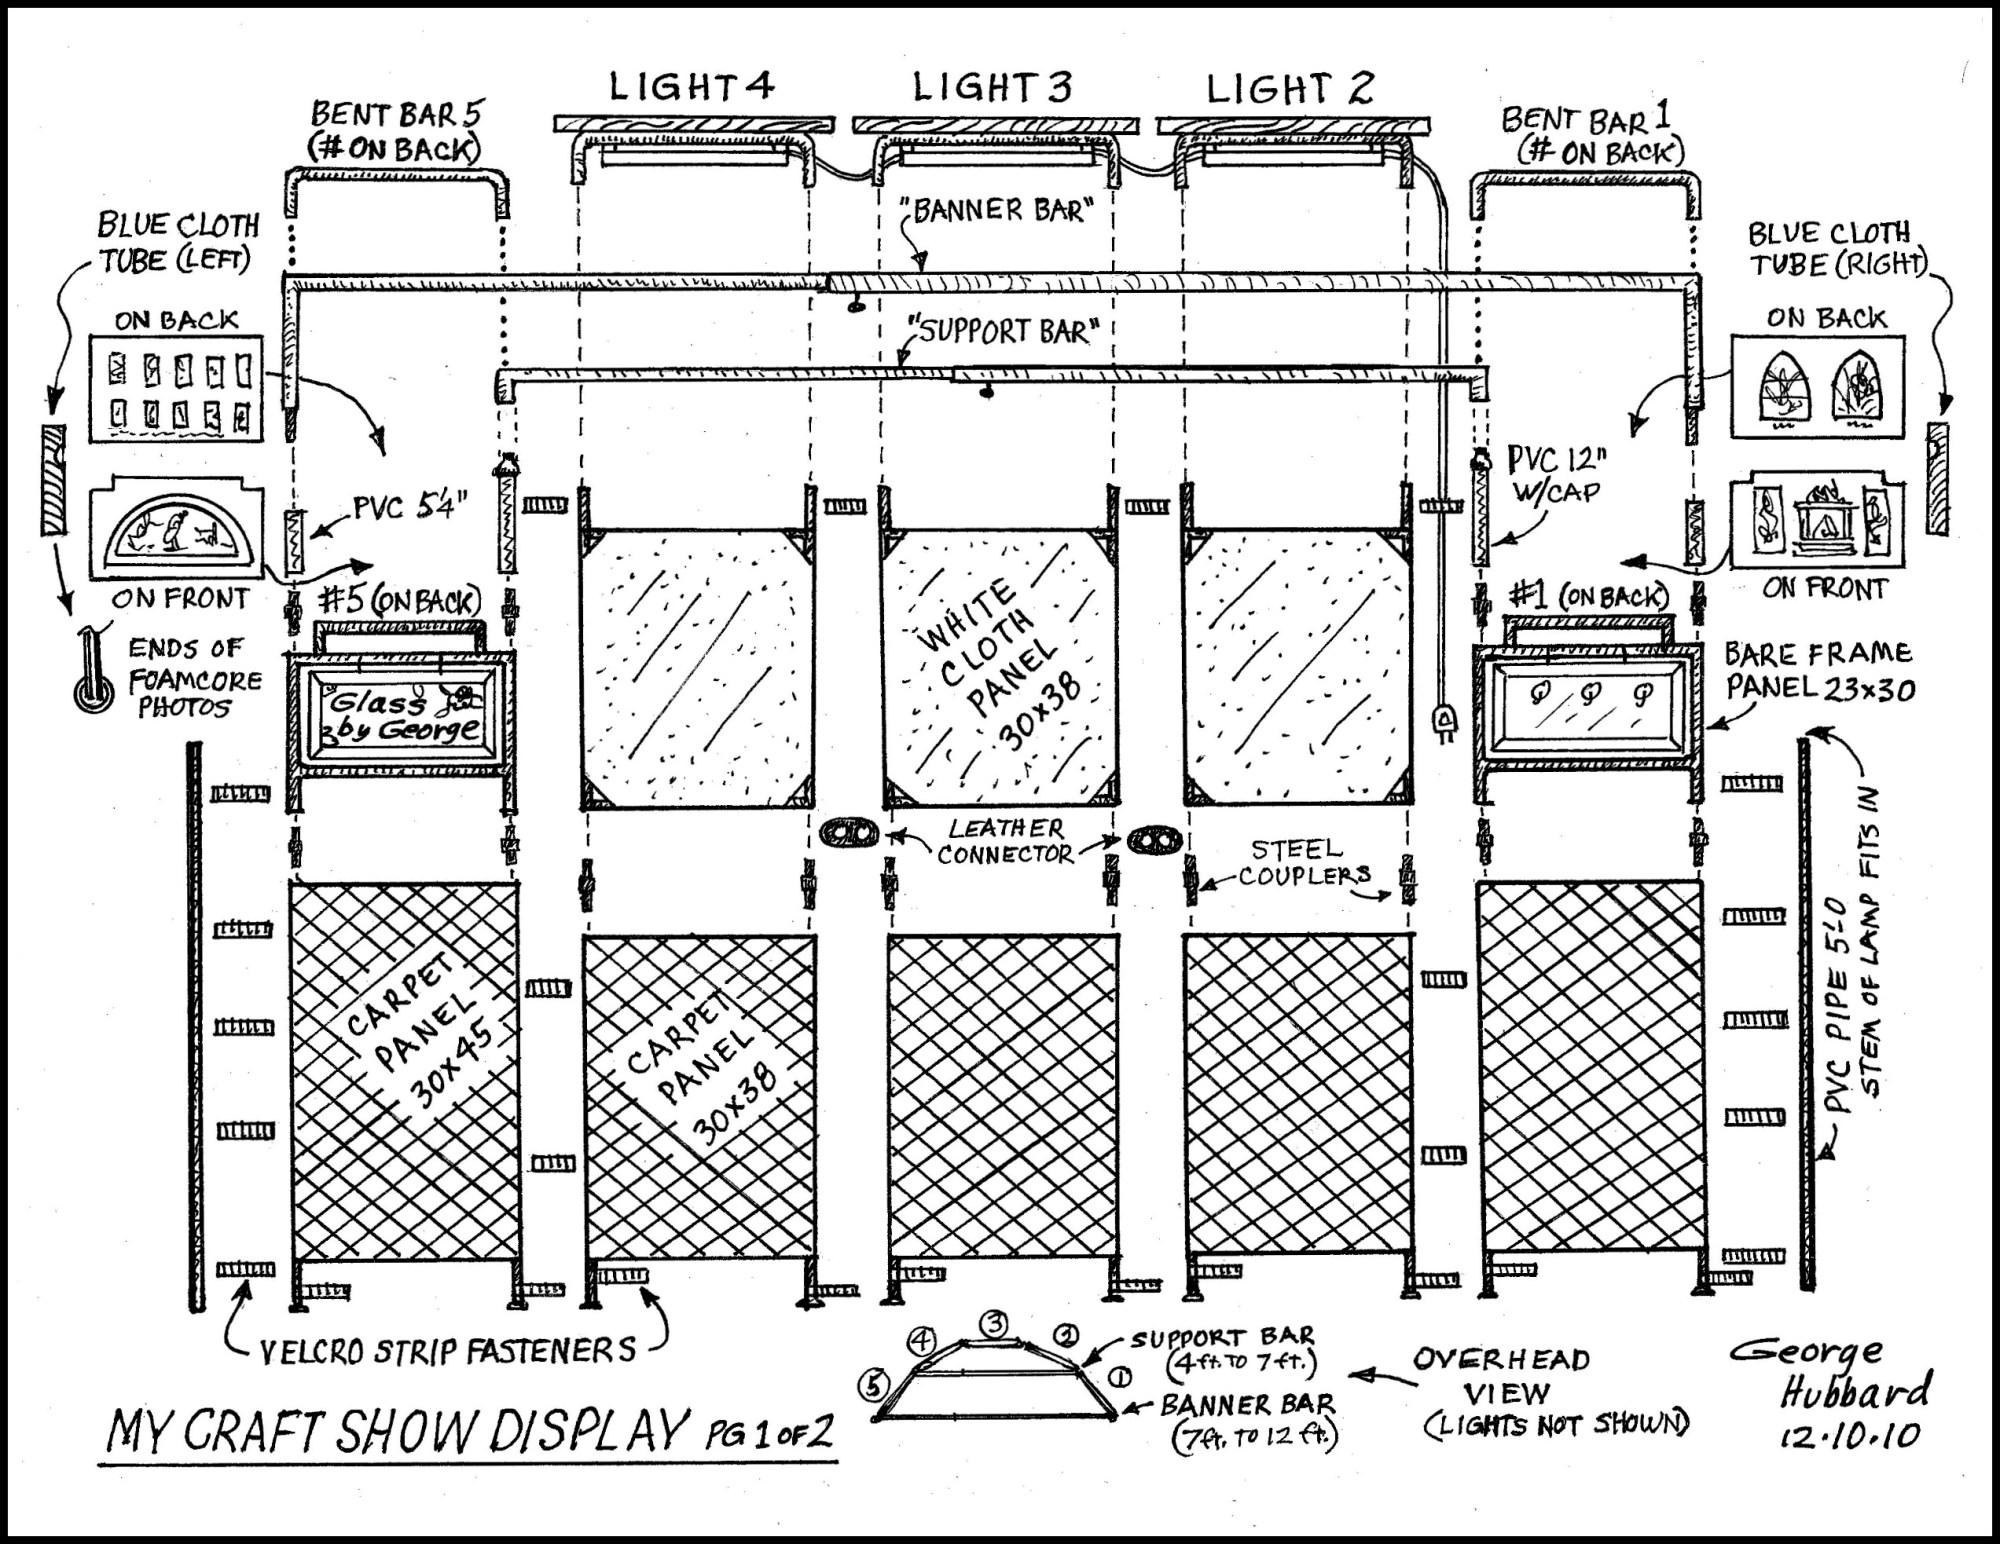 hight resolution of assembly diagram 8 1 2 x 11 ink markers